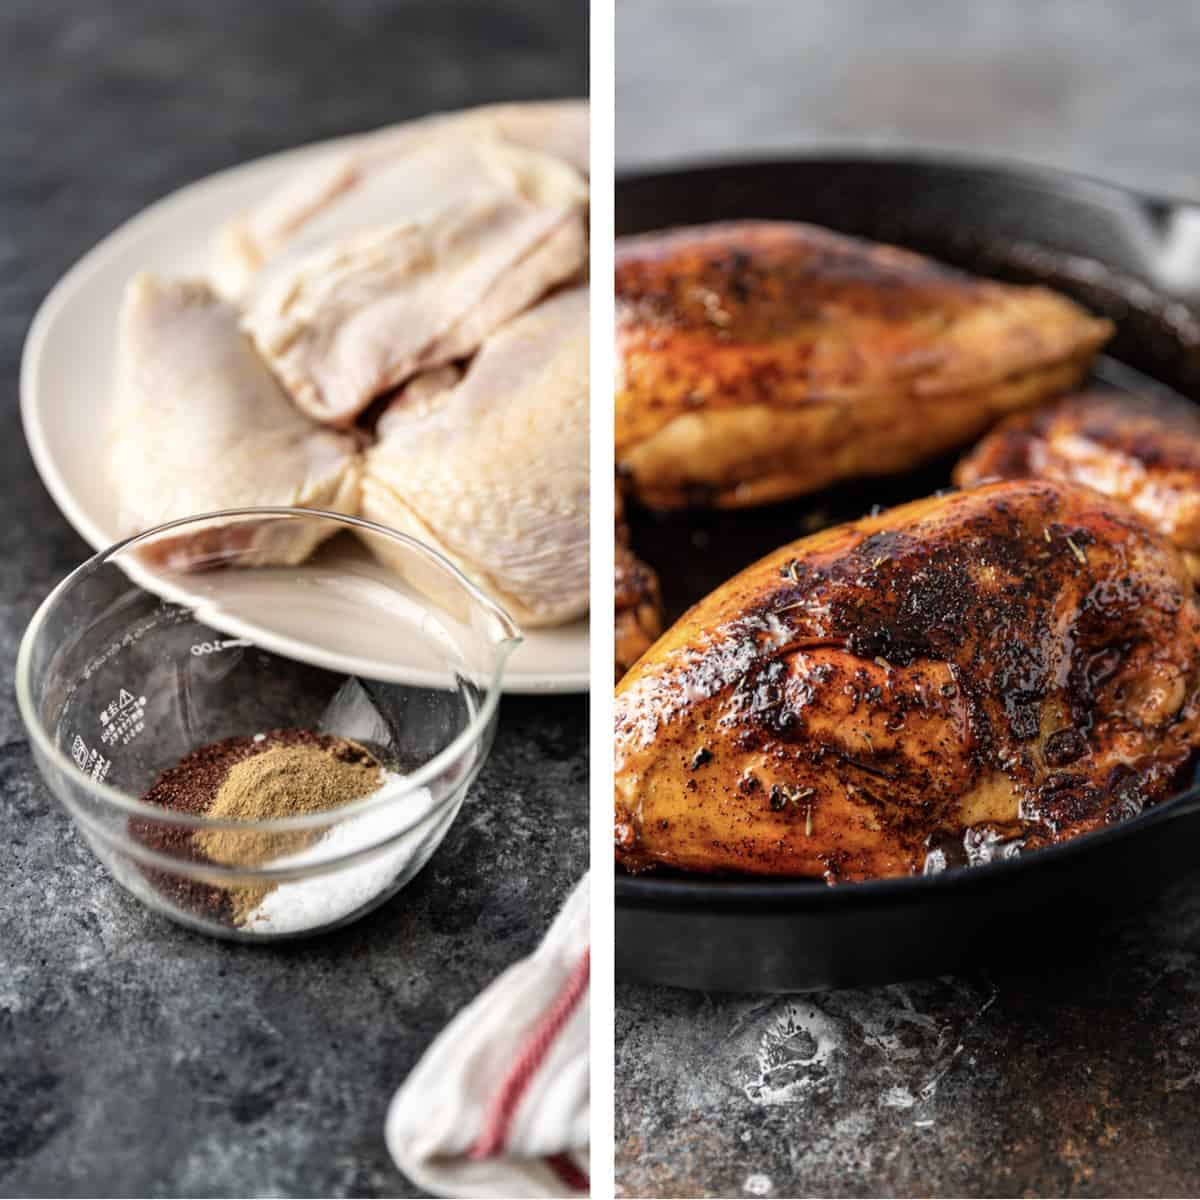 side by side photo collage - on left: raw chicken breasts with the skin on next to bowl of dry spice mix. On right: chicken seared in cast iron pan